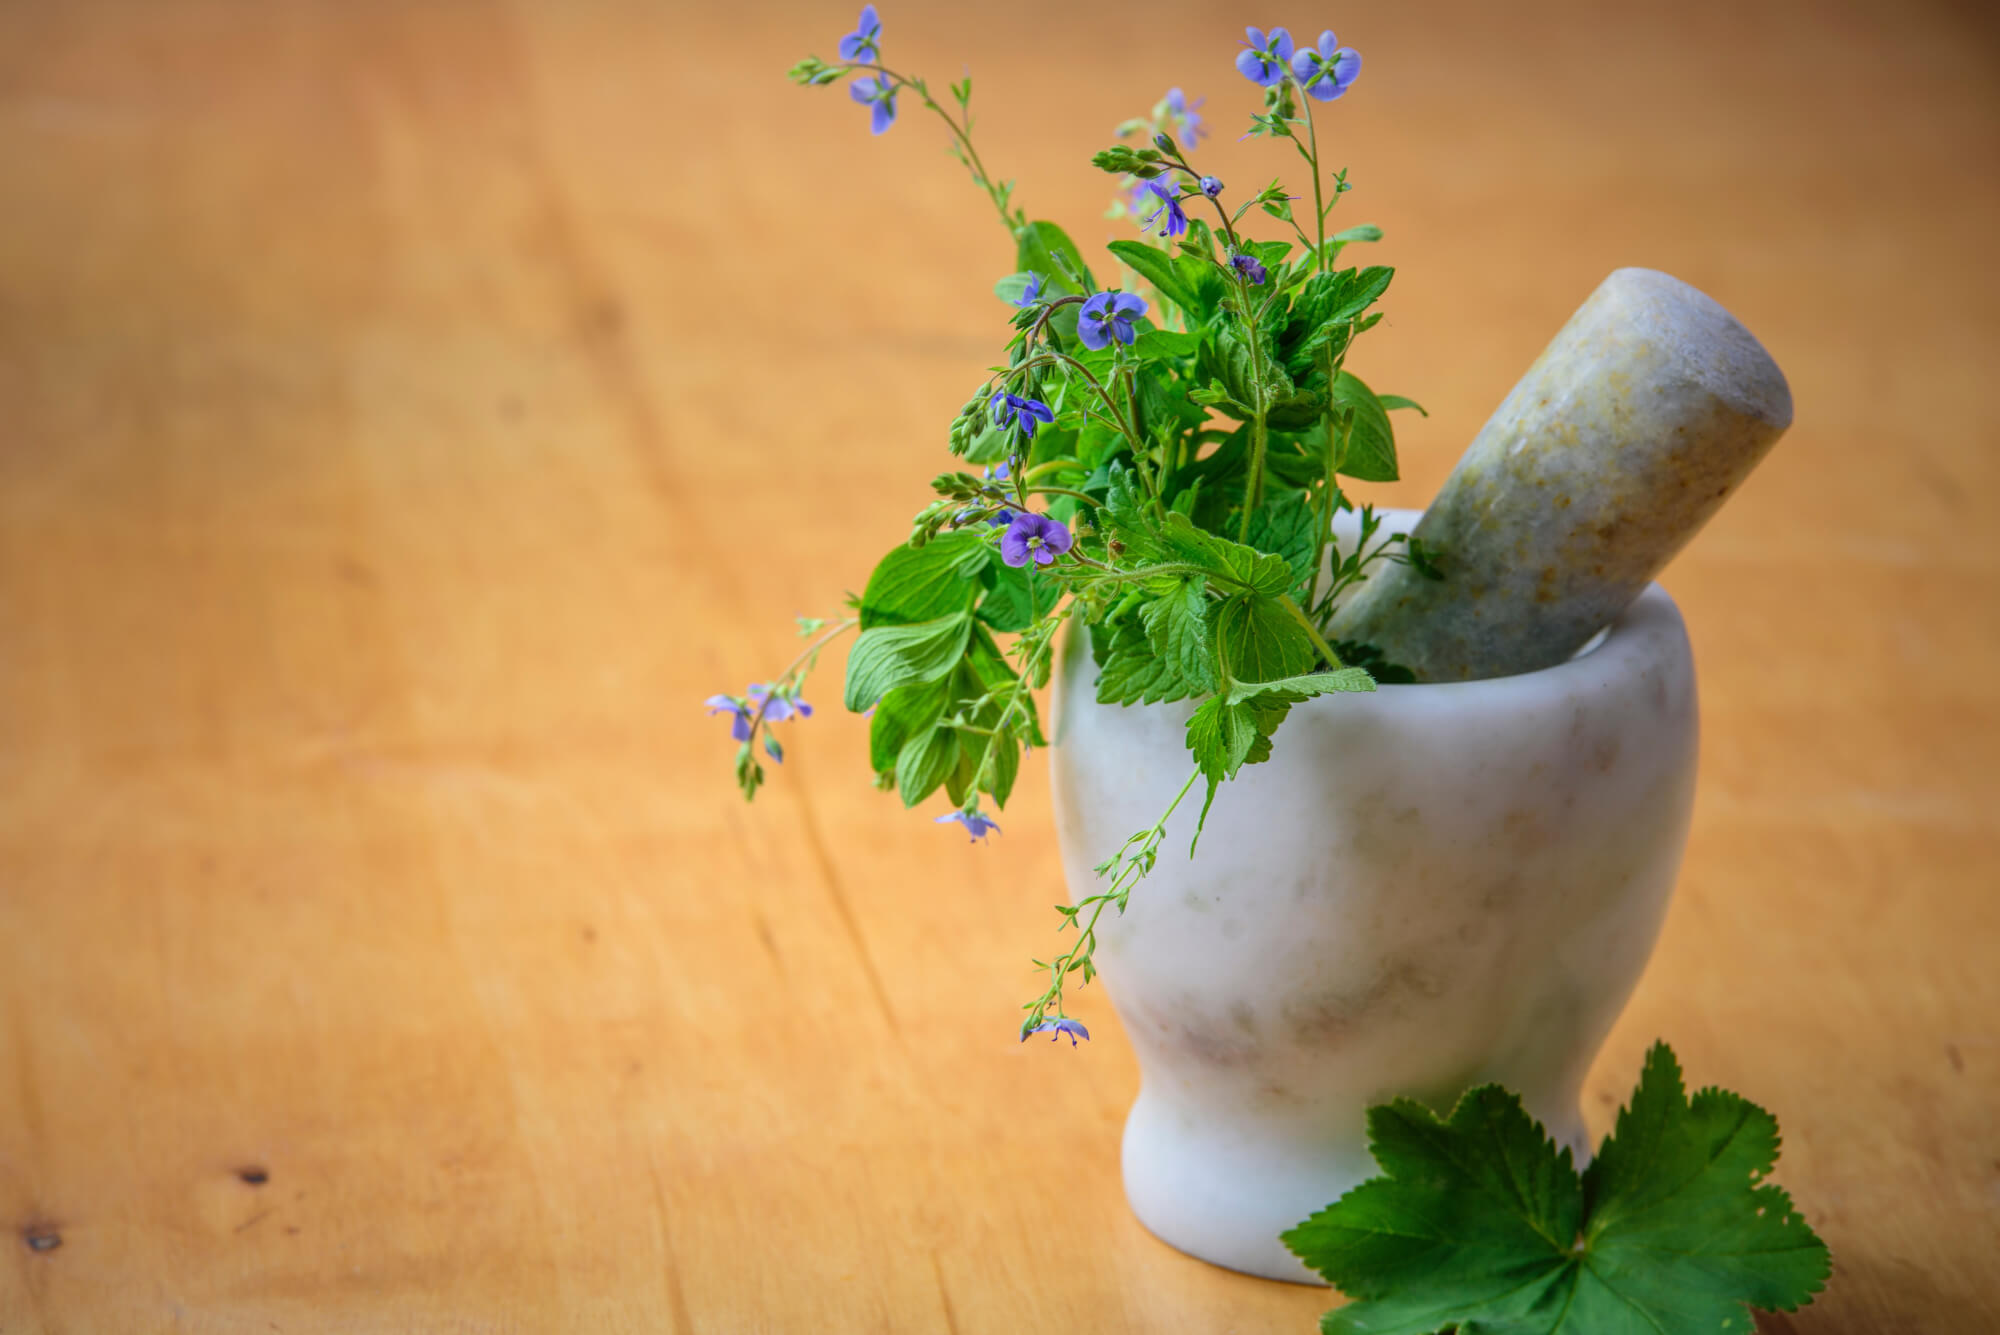 Green herbs in mortar with pestle